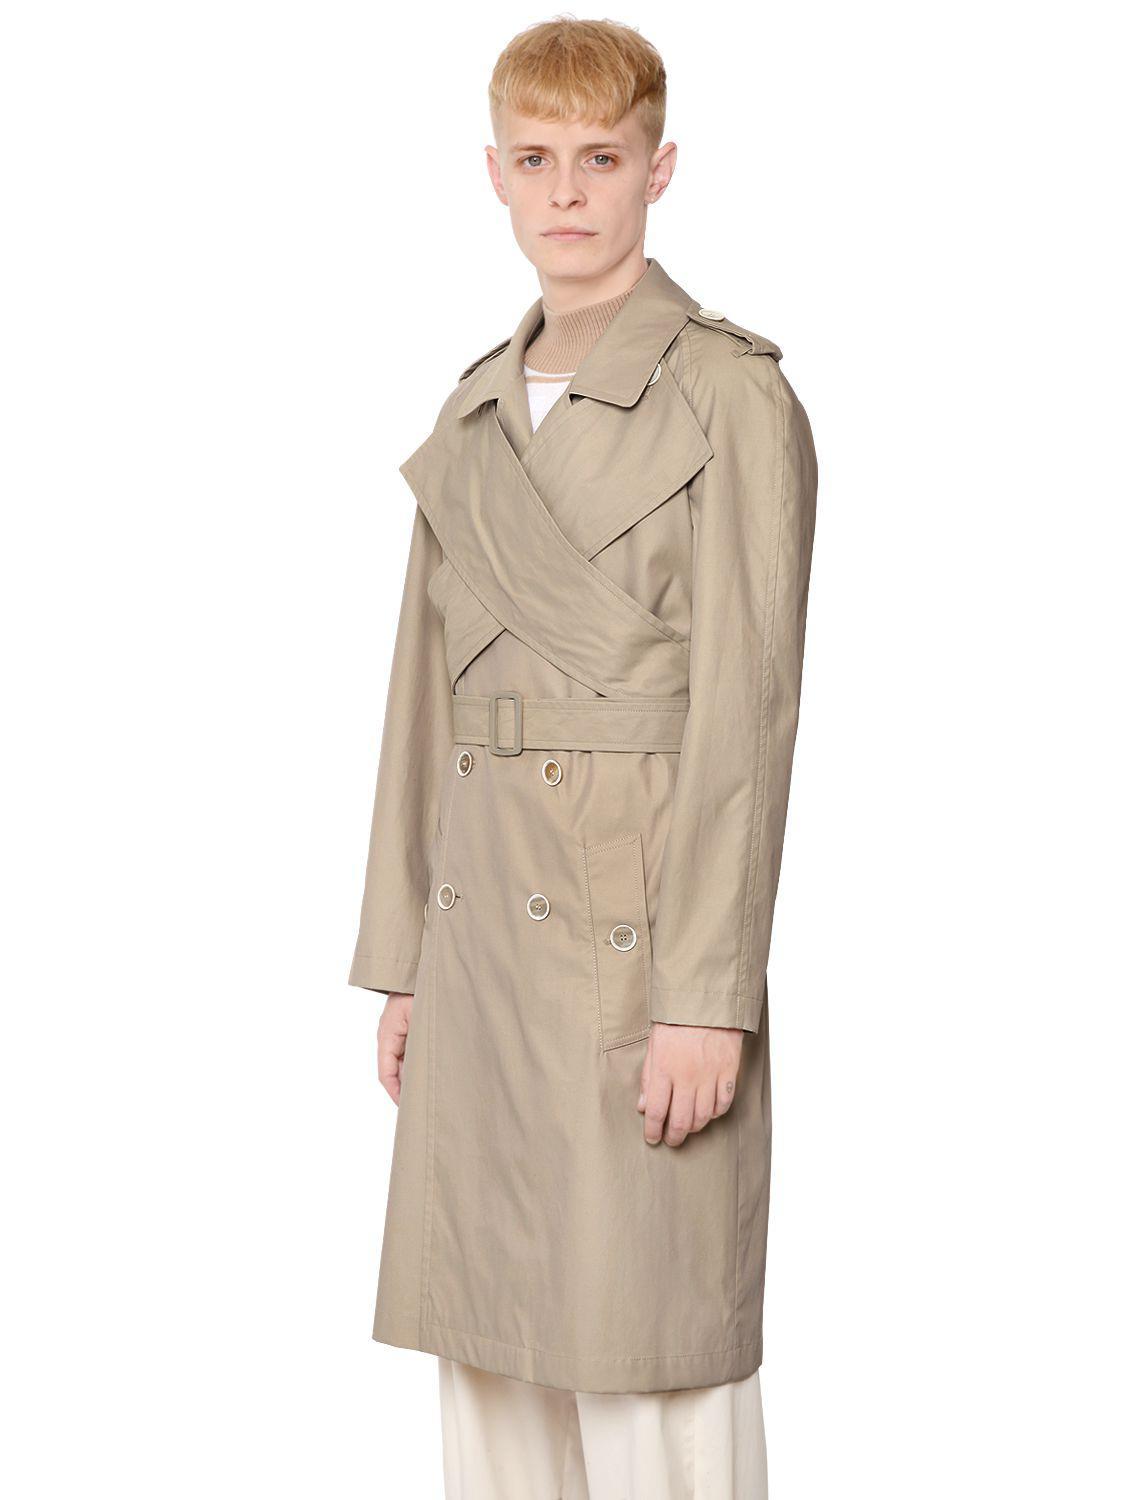 J.W.ANDERSON Wrap Front Trench Coat featuring polyvore